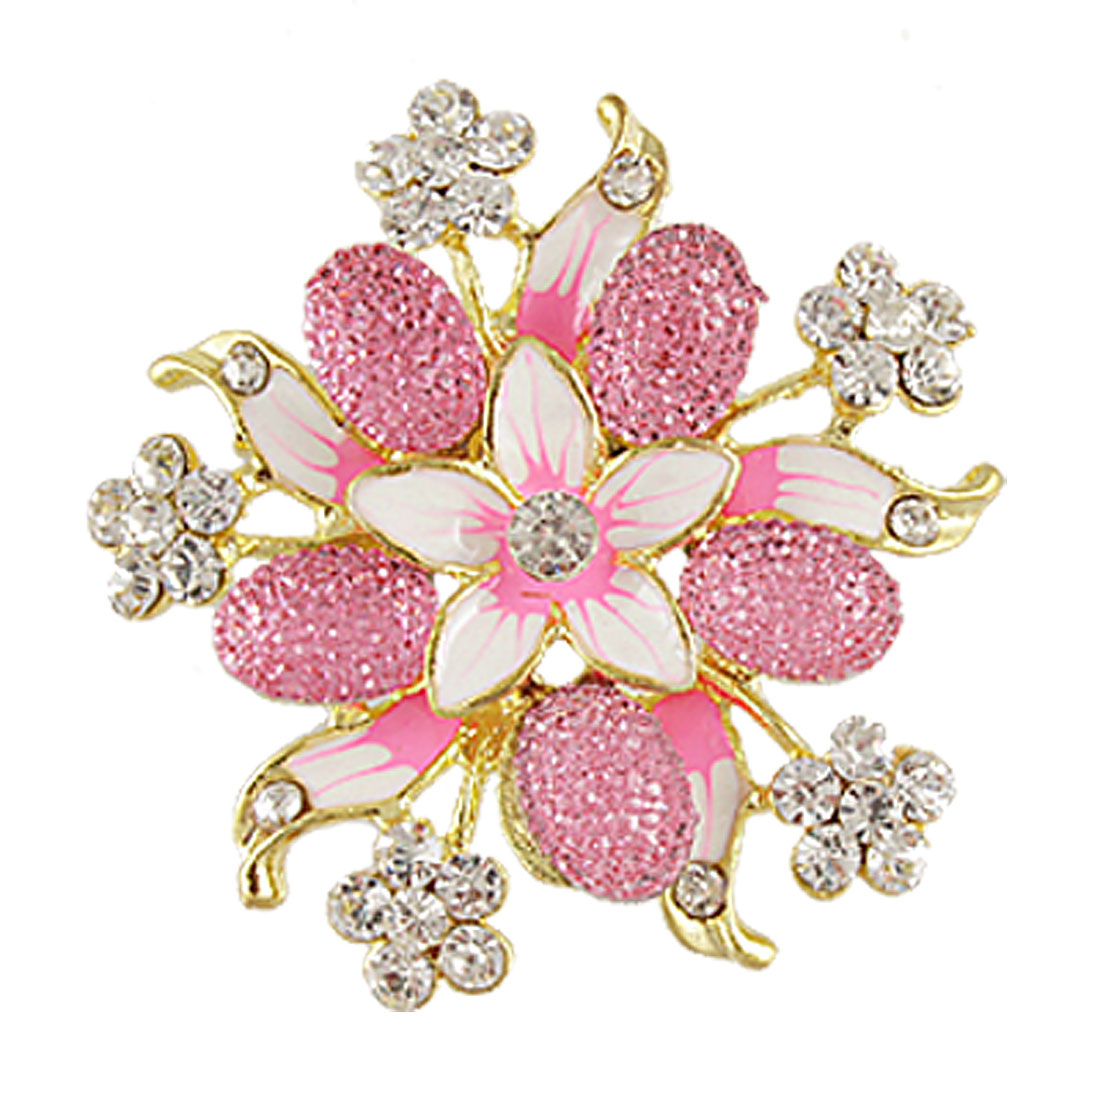 Glittery Rhinestone Cluster Pink Flower Shape Safety Pin Brooch for Lady